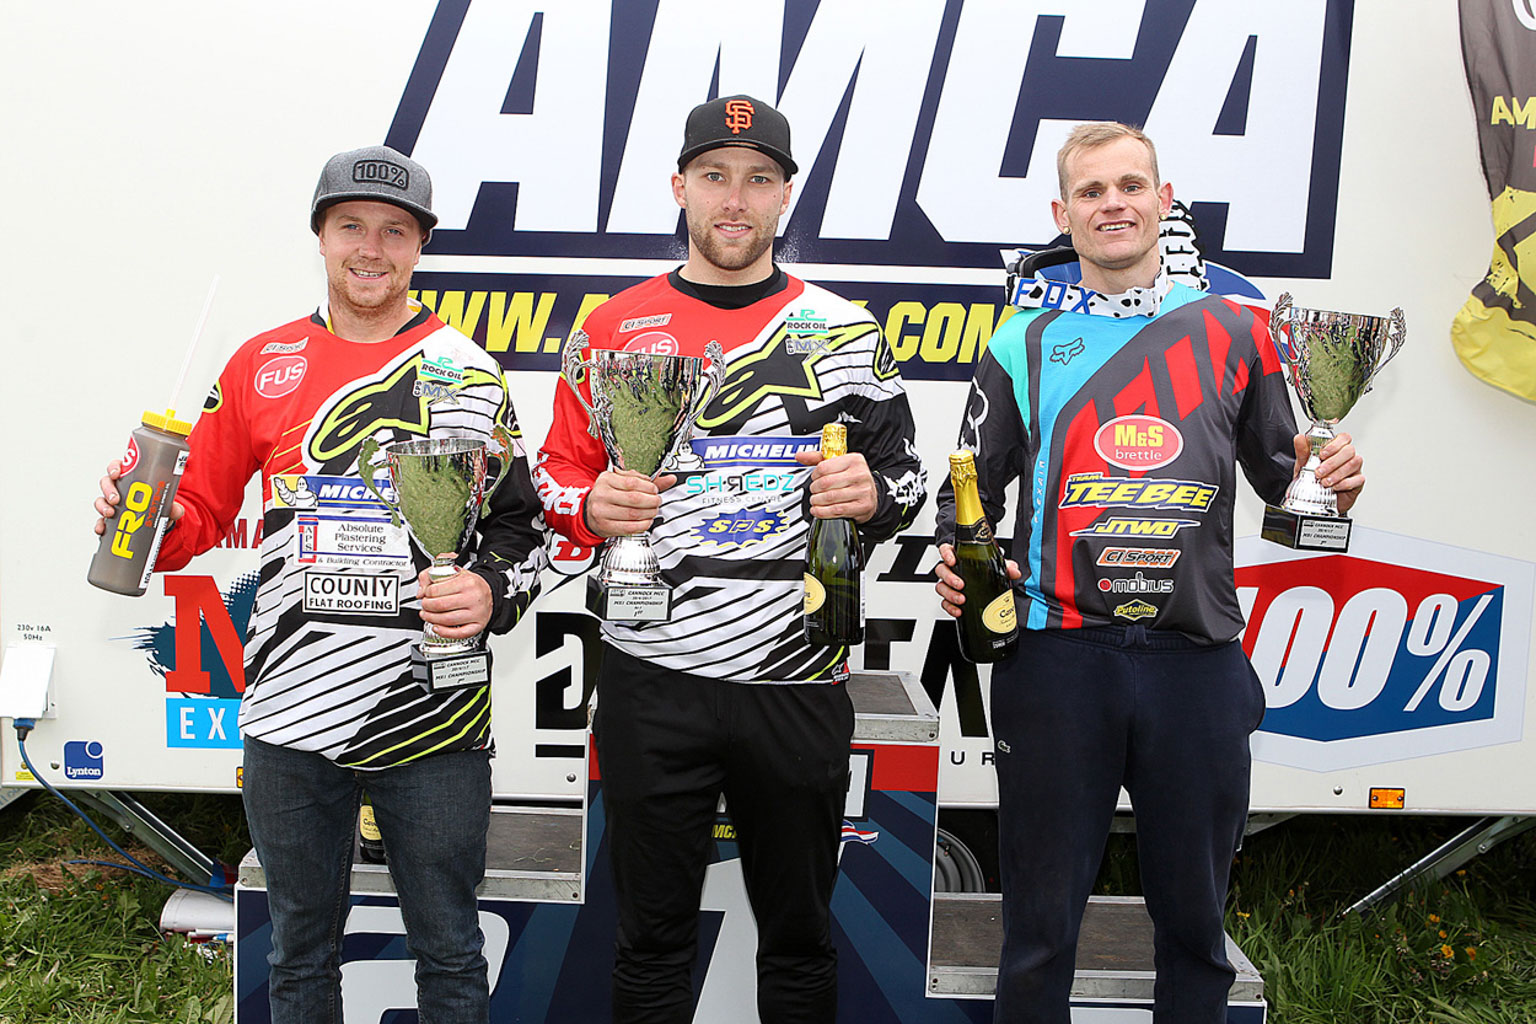 MX1 top three with left to right, James Dodd 2nd, winner Luke Burton and Richard Cannings 3rd